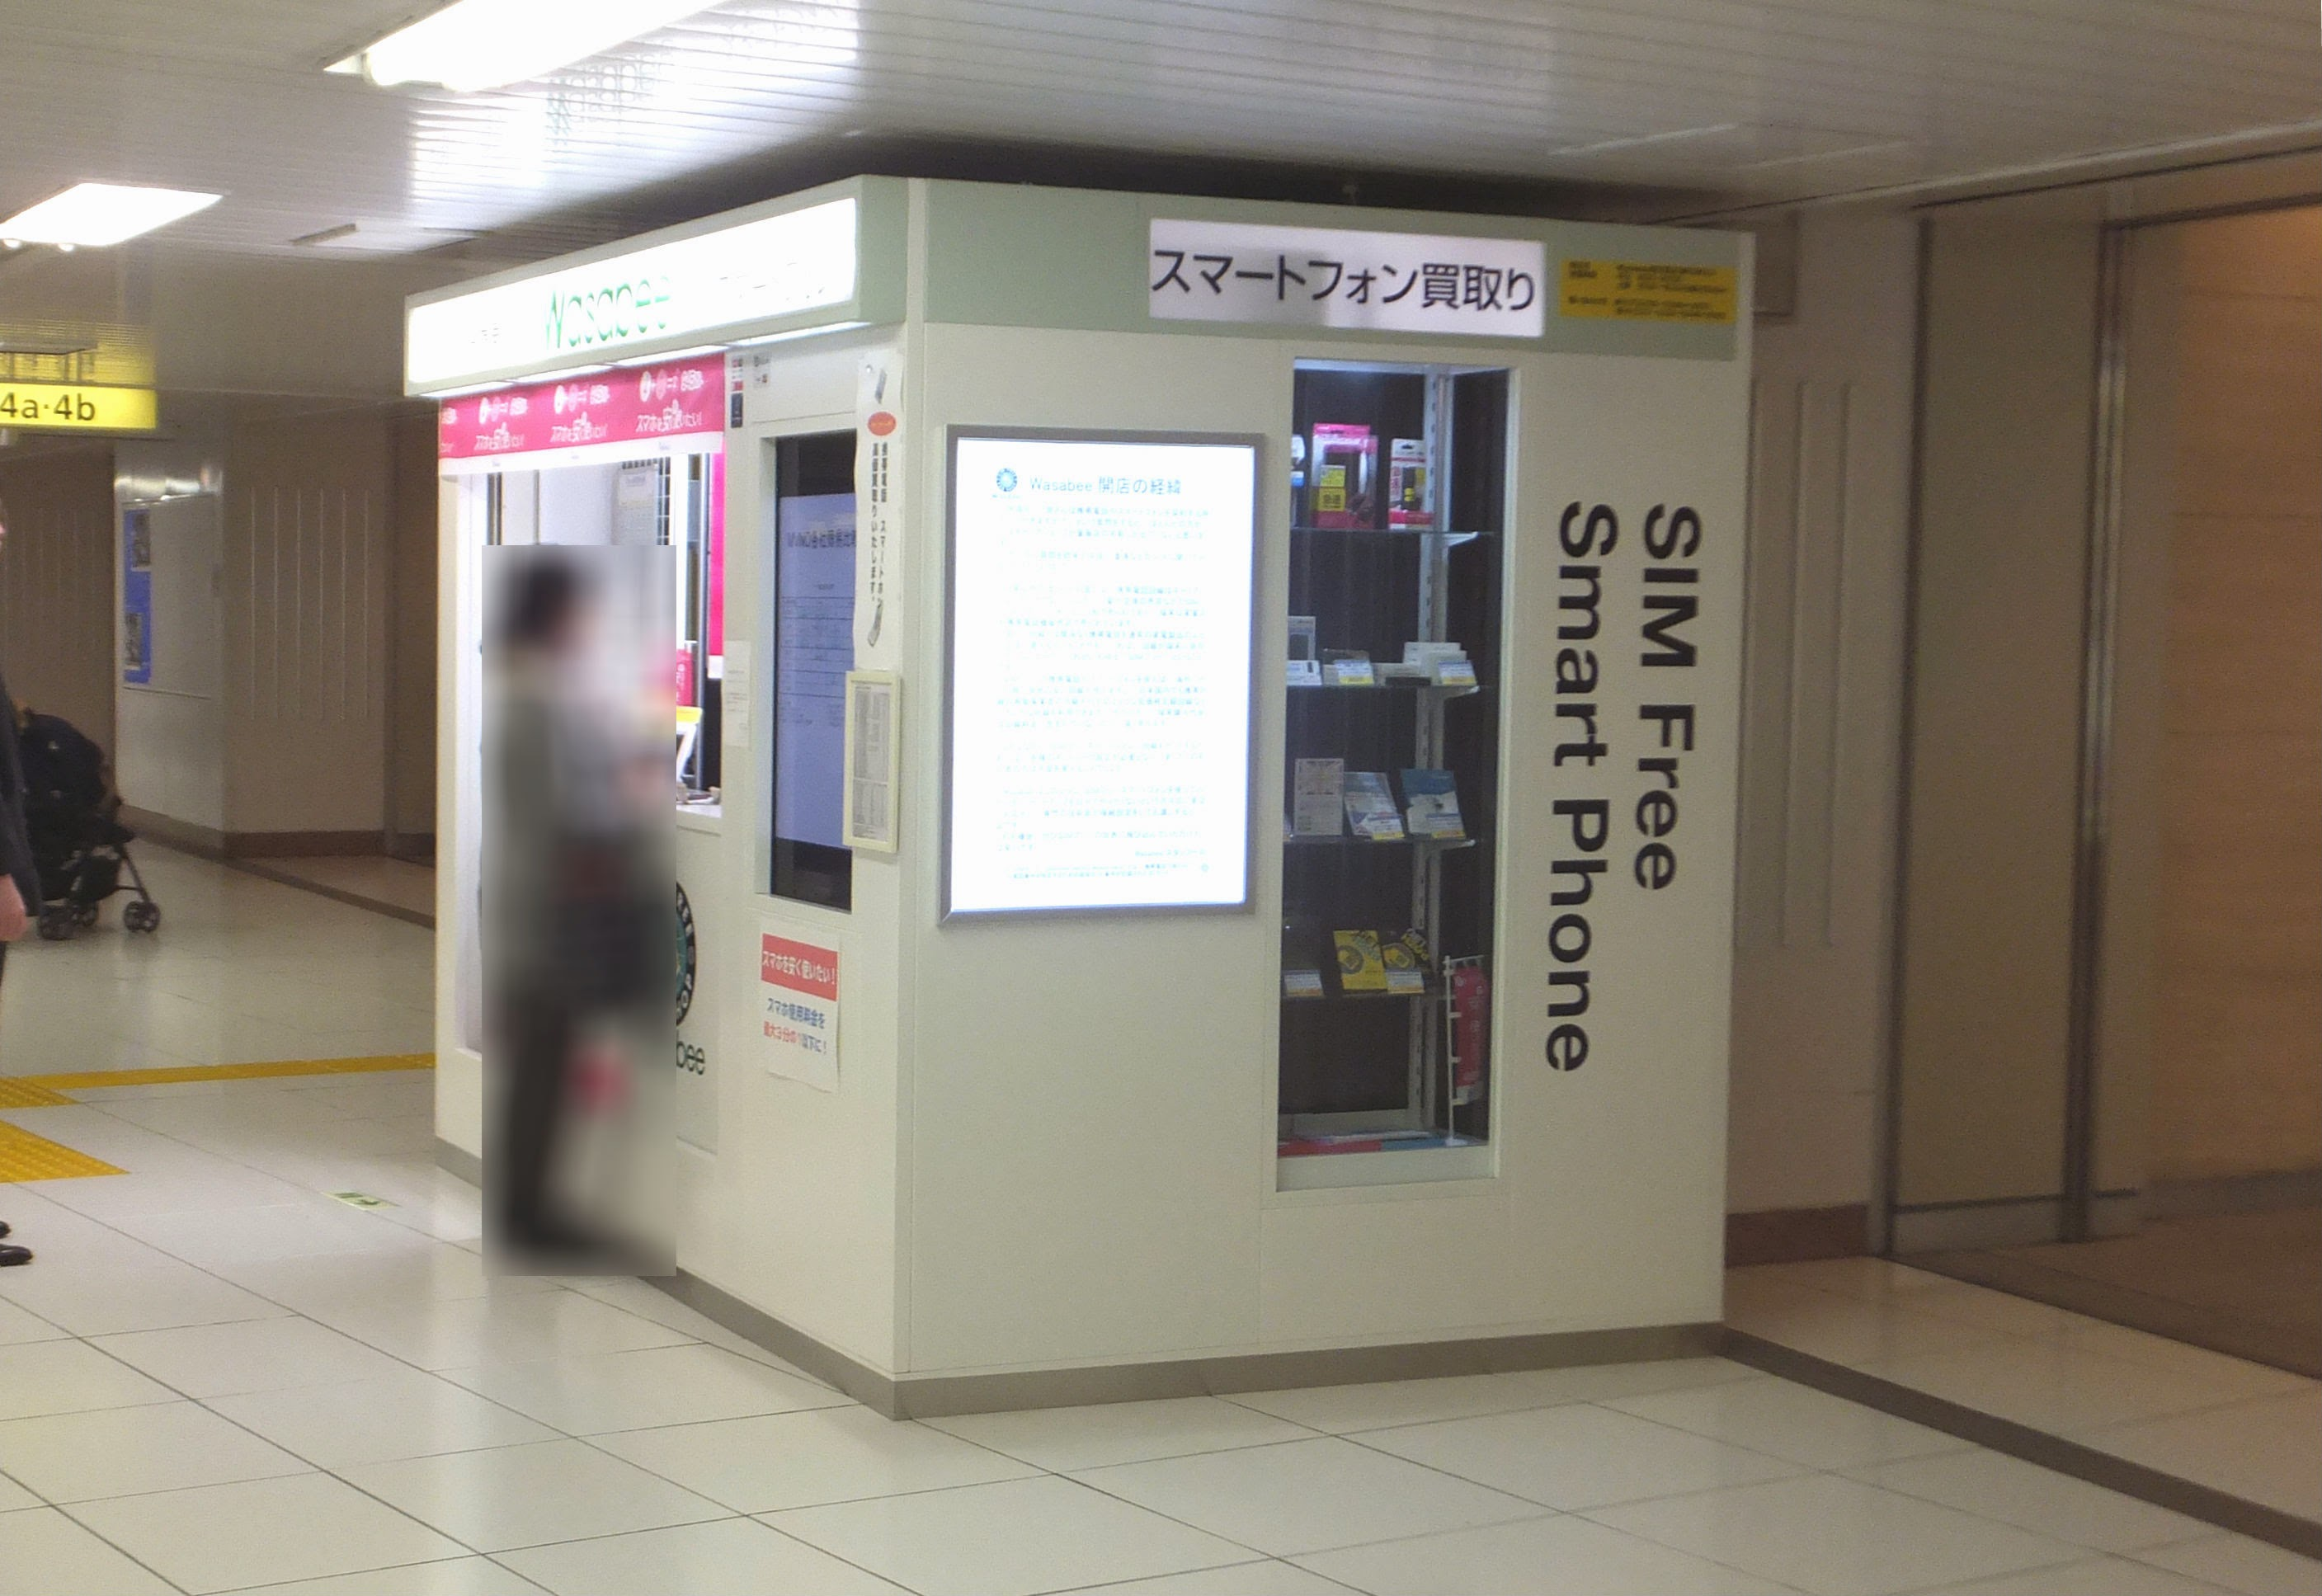 Wasabee-shop-tokyo-station 東京駅Wasabee